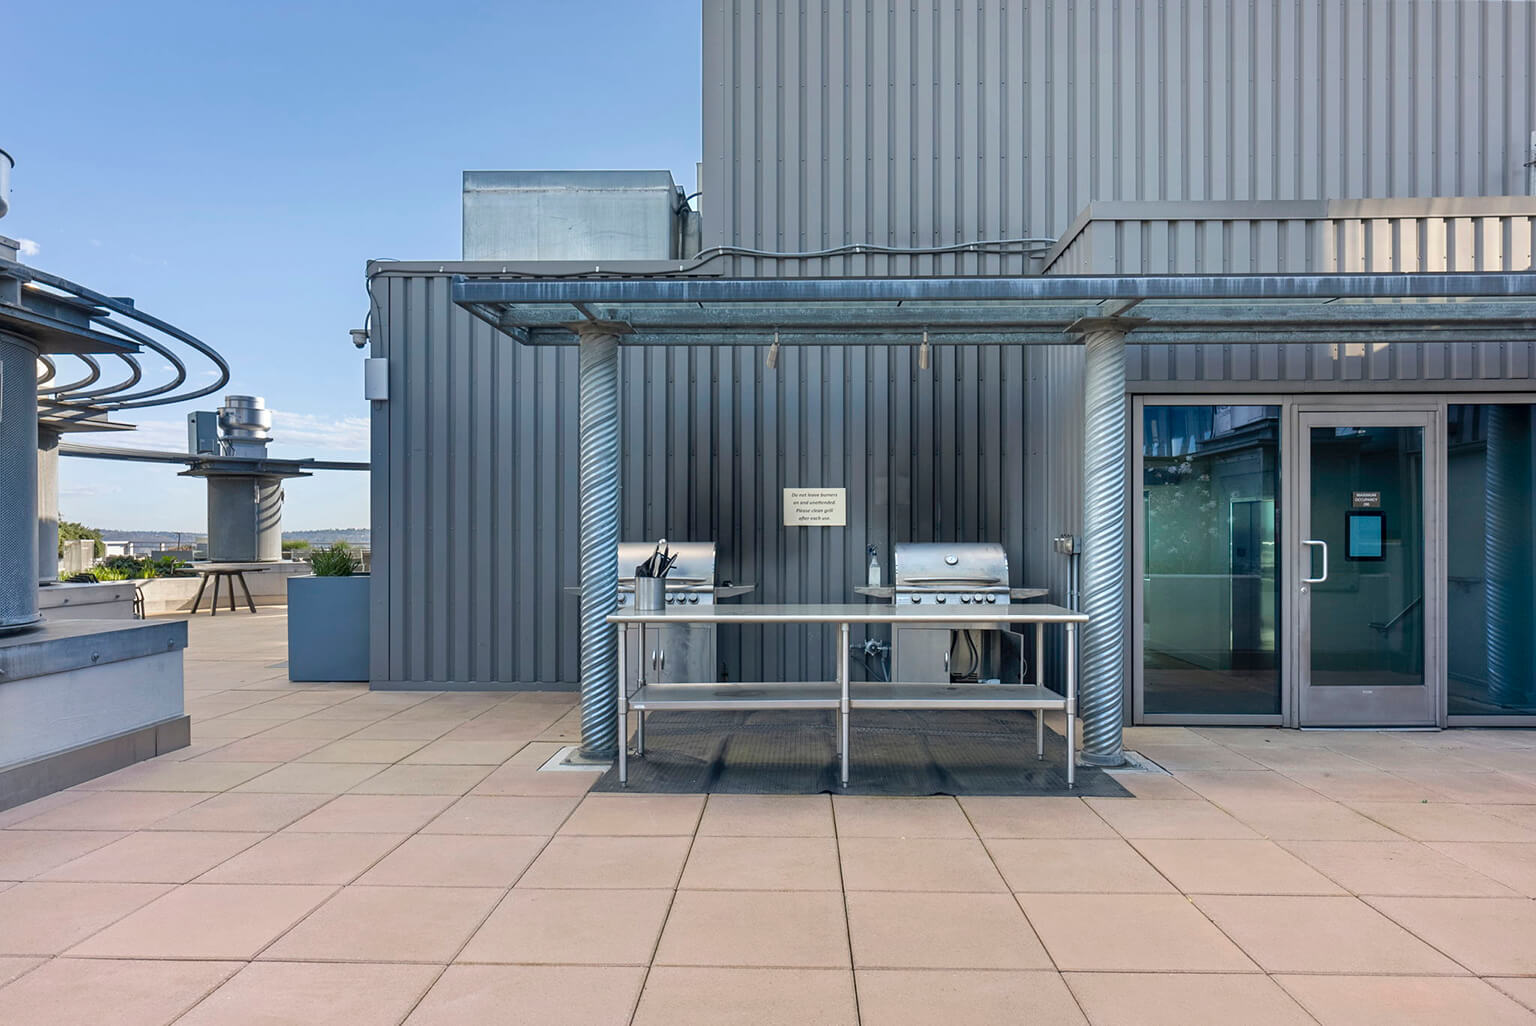 Multiple gas grills